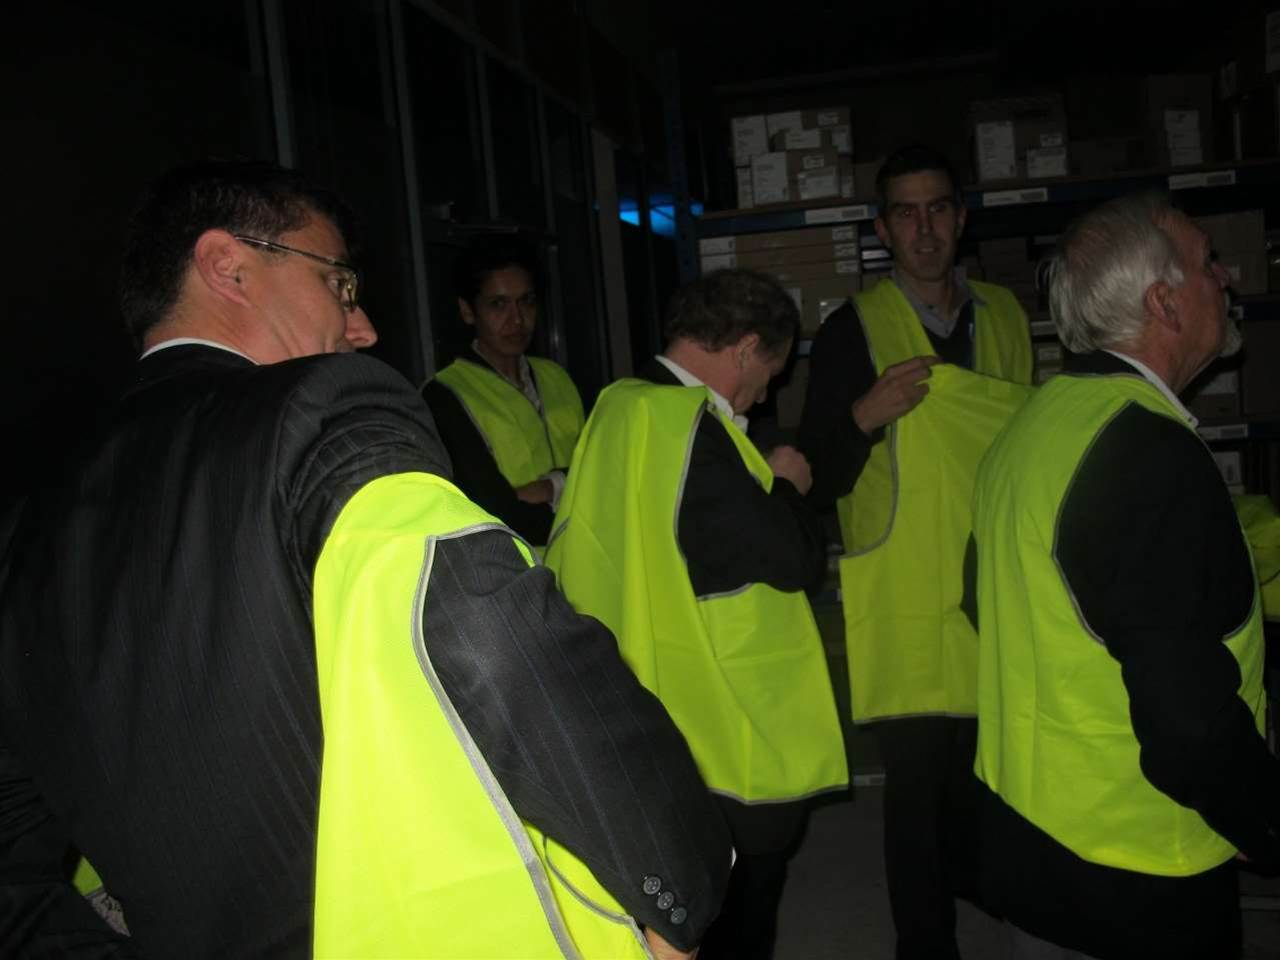 Throughout the festivities, guests were taken out in groups for a guided tour of the facility. (The safety vests were responsible for more than a few fashion faux pas.)